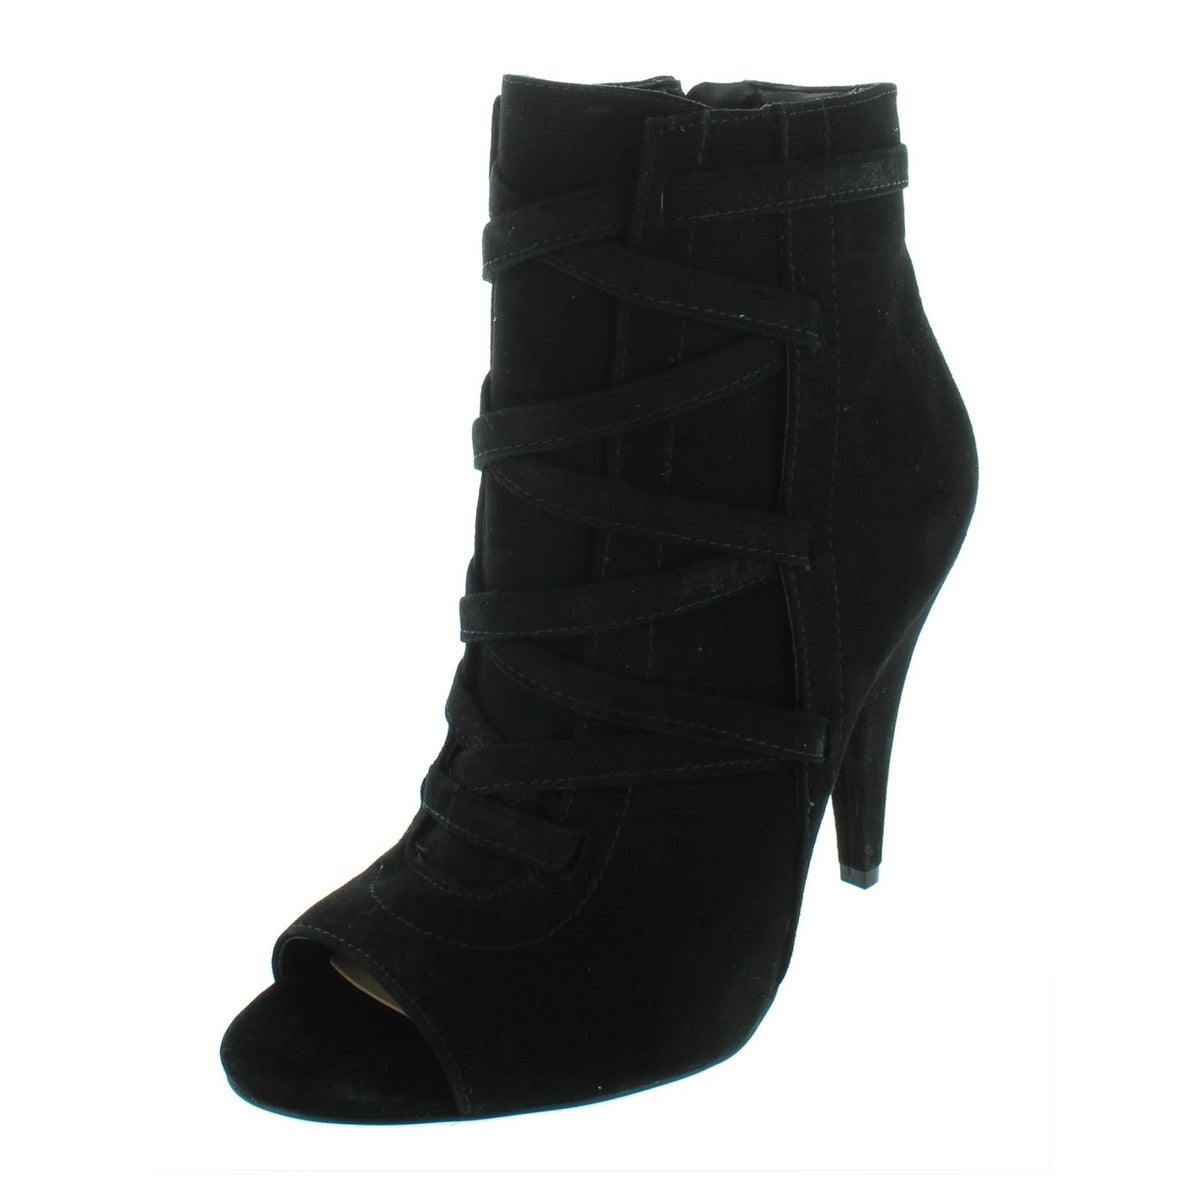 e771435be32 Buy Vince Camuto Women's Boots Online at Overstock | Our Best ...